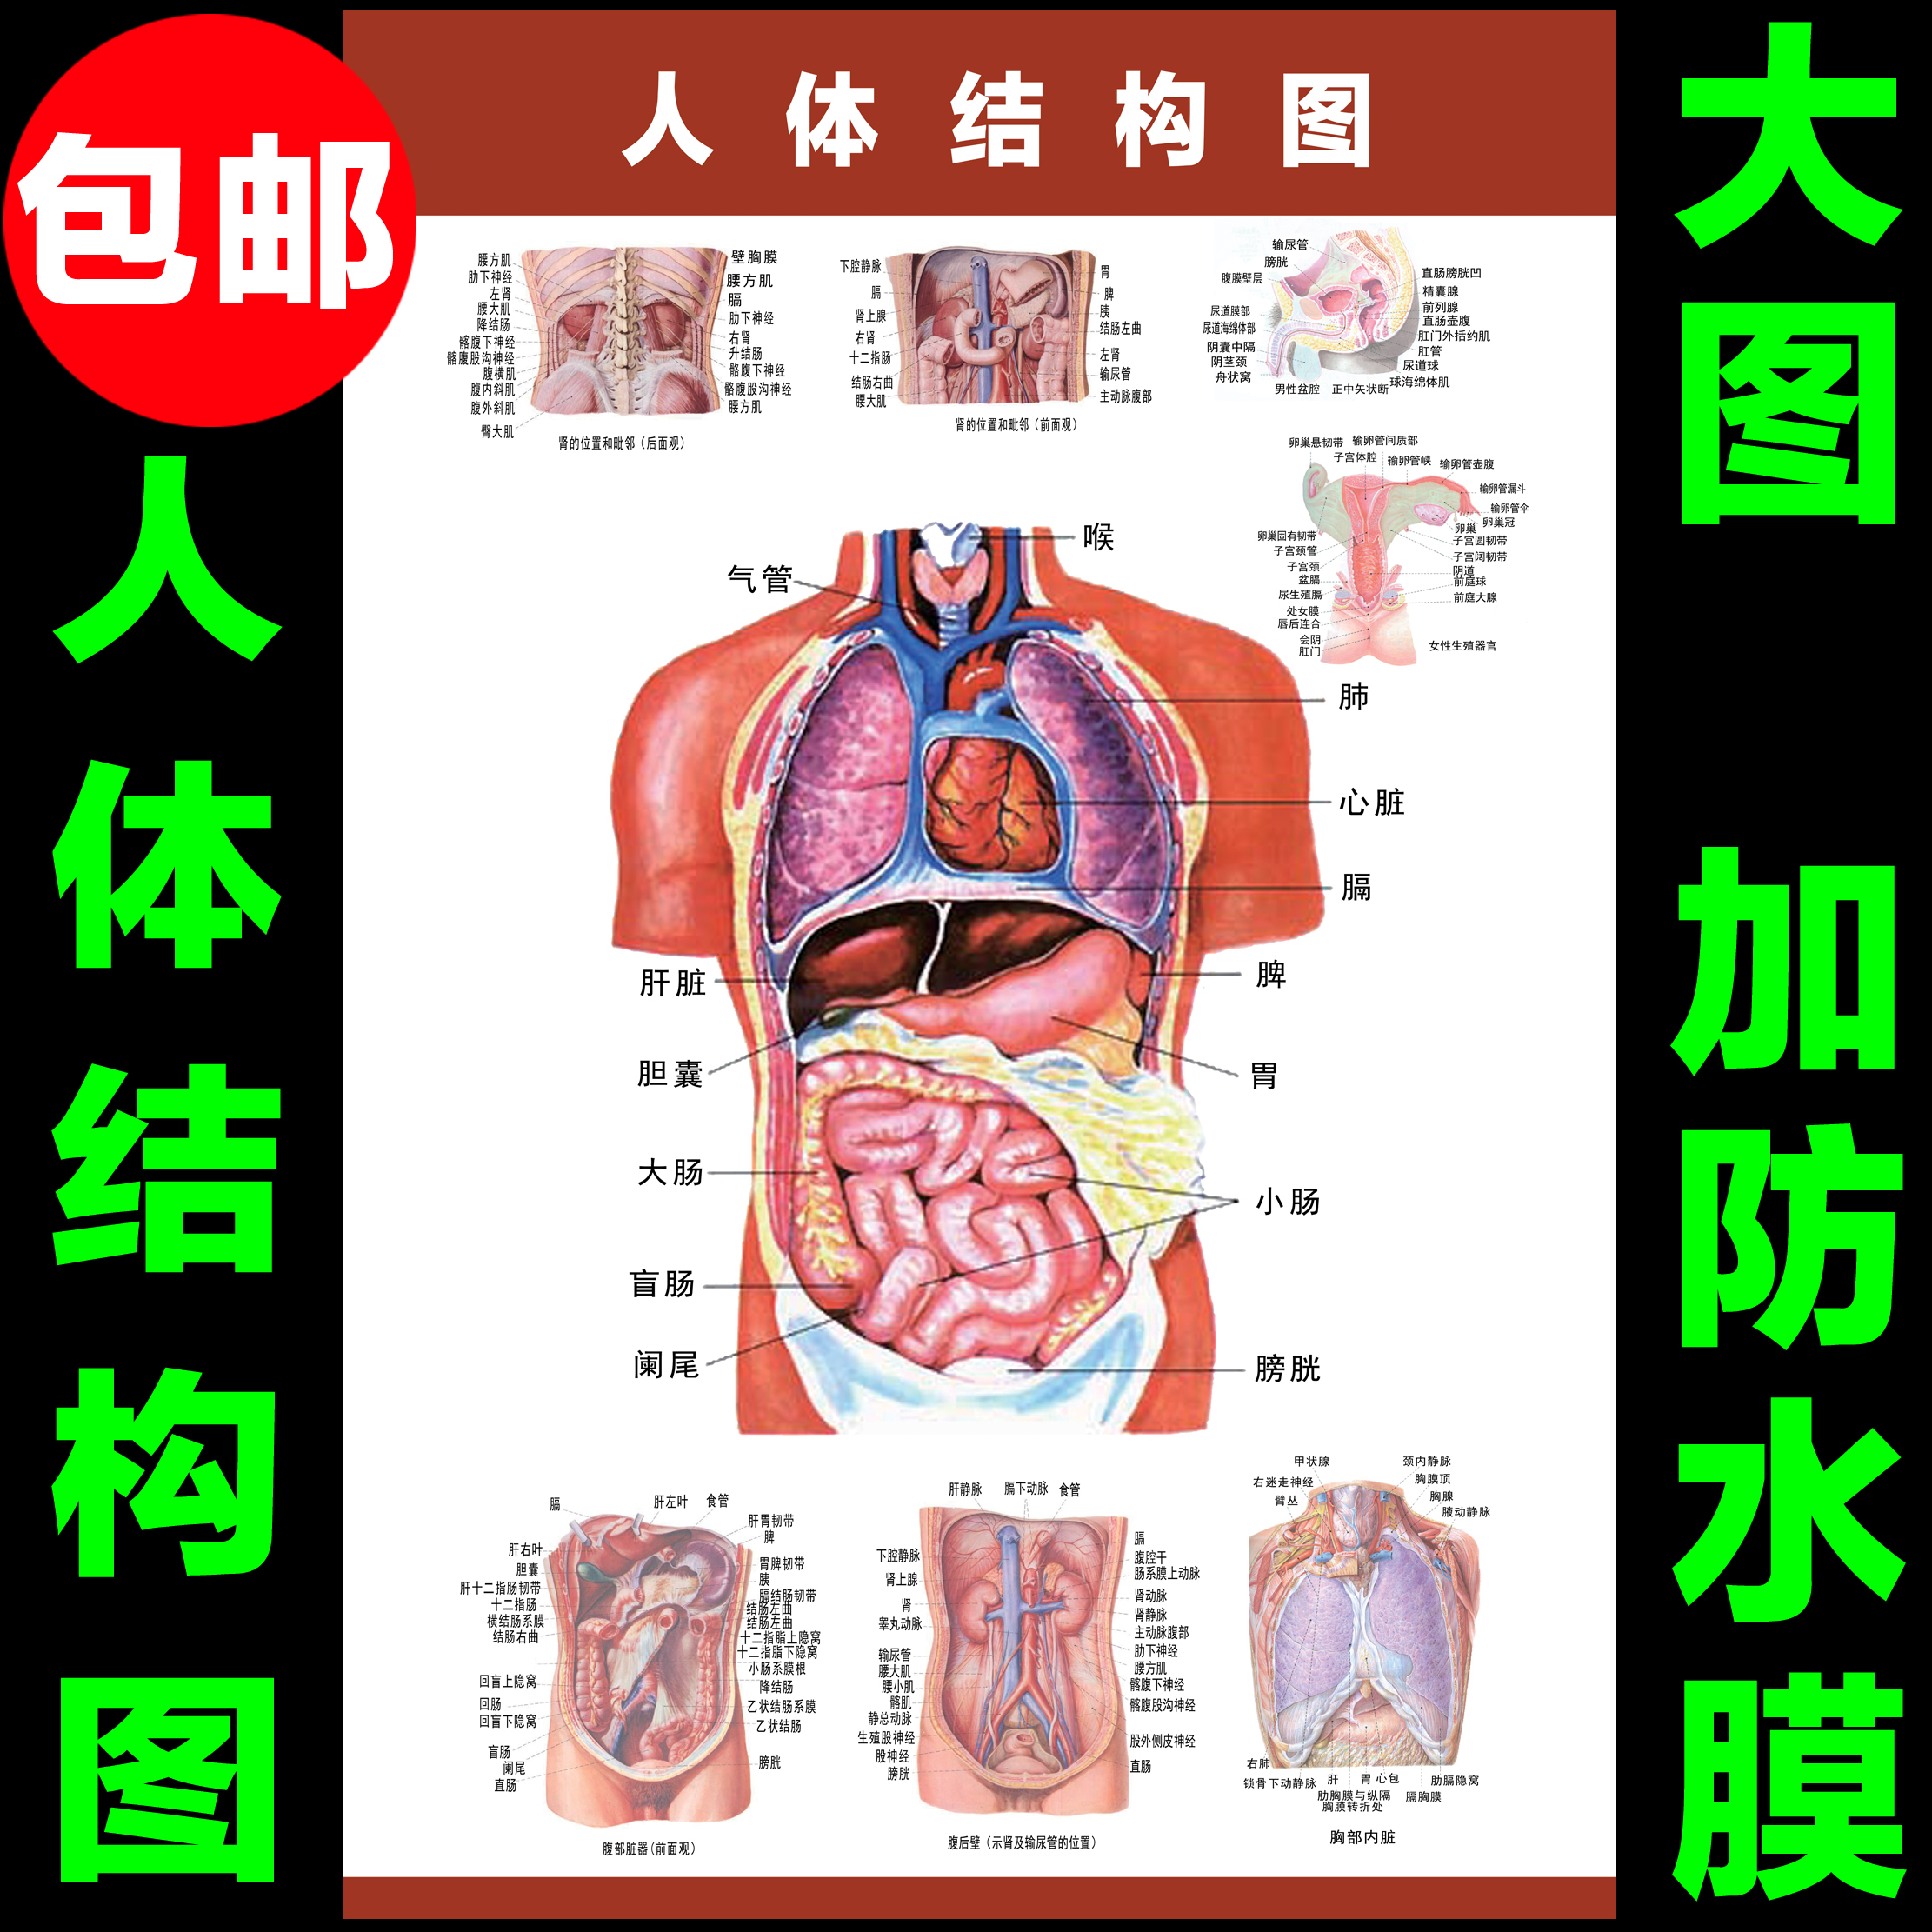 Usd 621 the human body internal organs anatomy system diagram the human body internal organs anatomy system diagram medical promotional wall chart human organs the ccuart Image collections